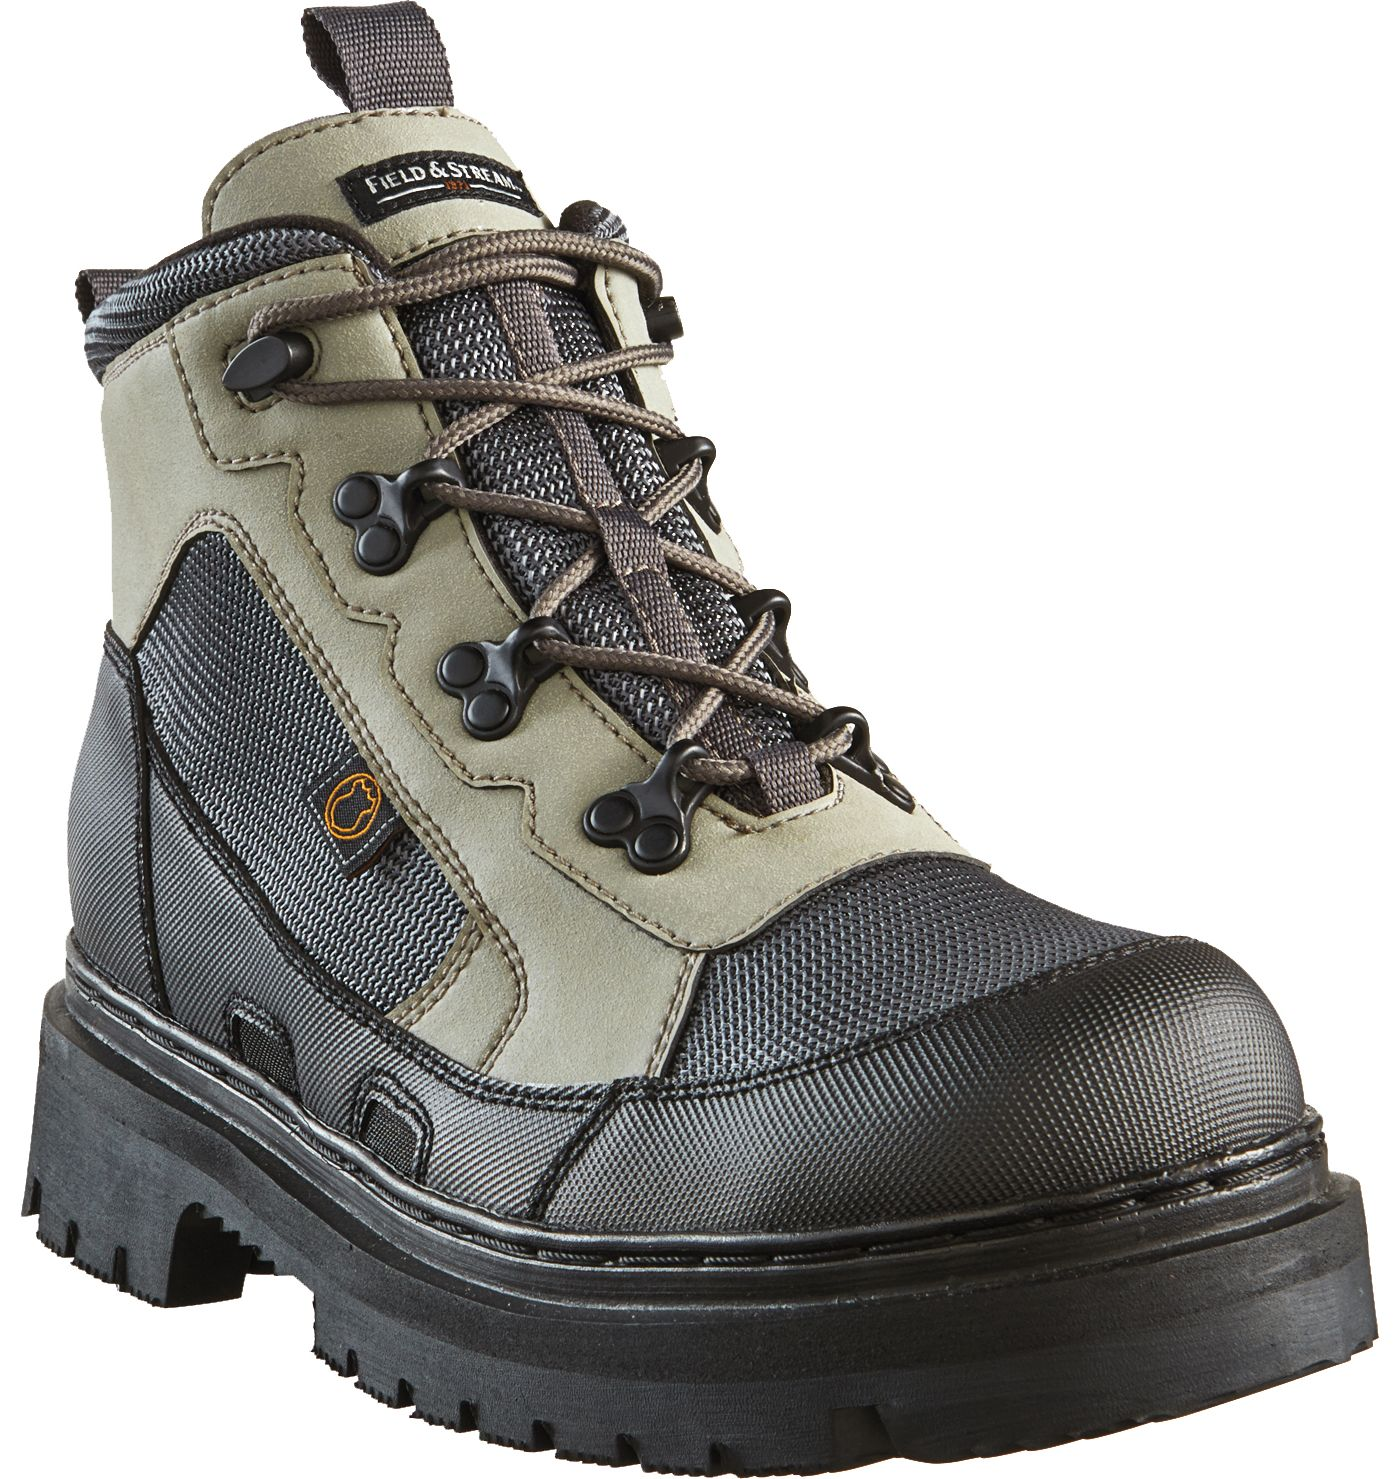 Field & Stream Angler Sticky Rubber Sole Wading Boots